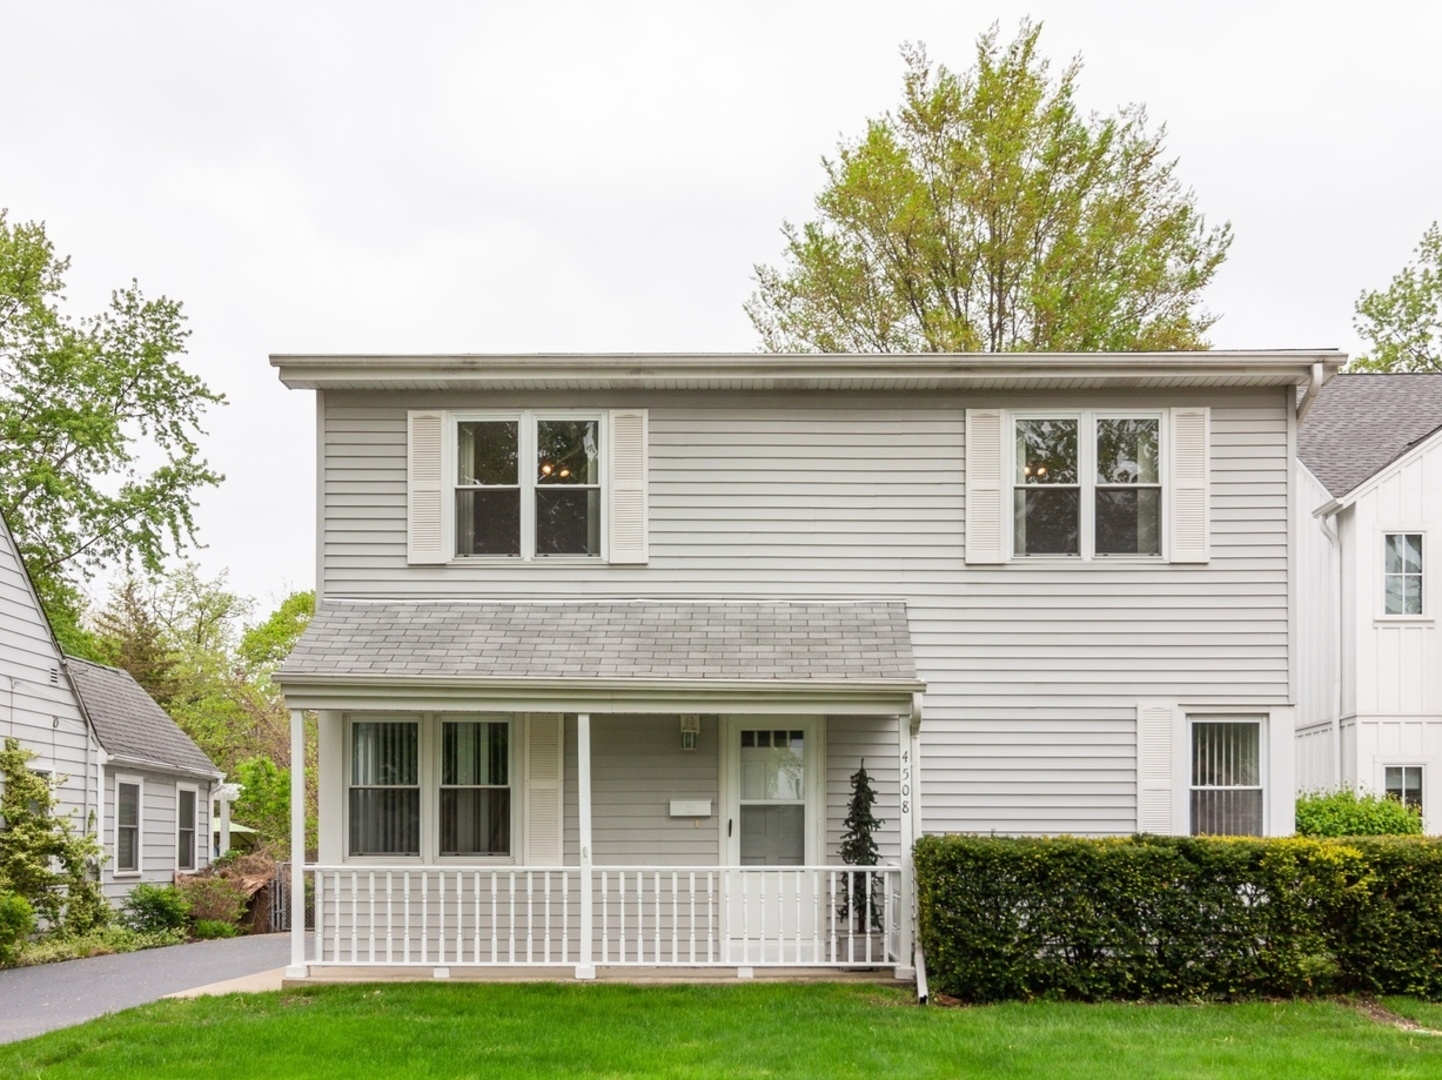 Photo for 4508 Stanley Avenue, Downers Grove, IL 60515 (MLS # 10577120)